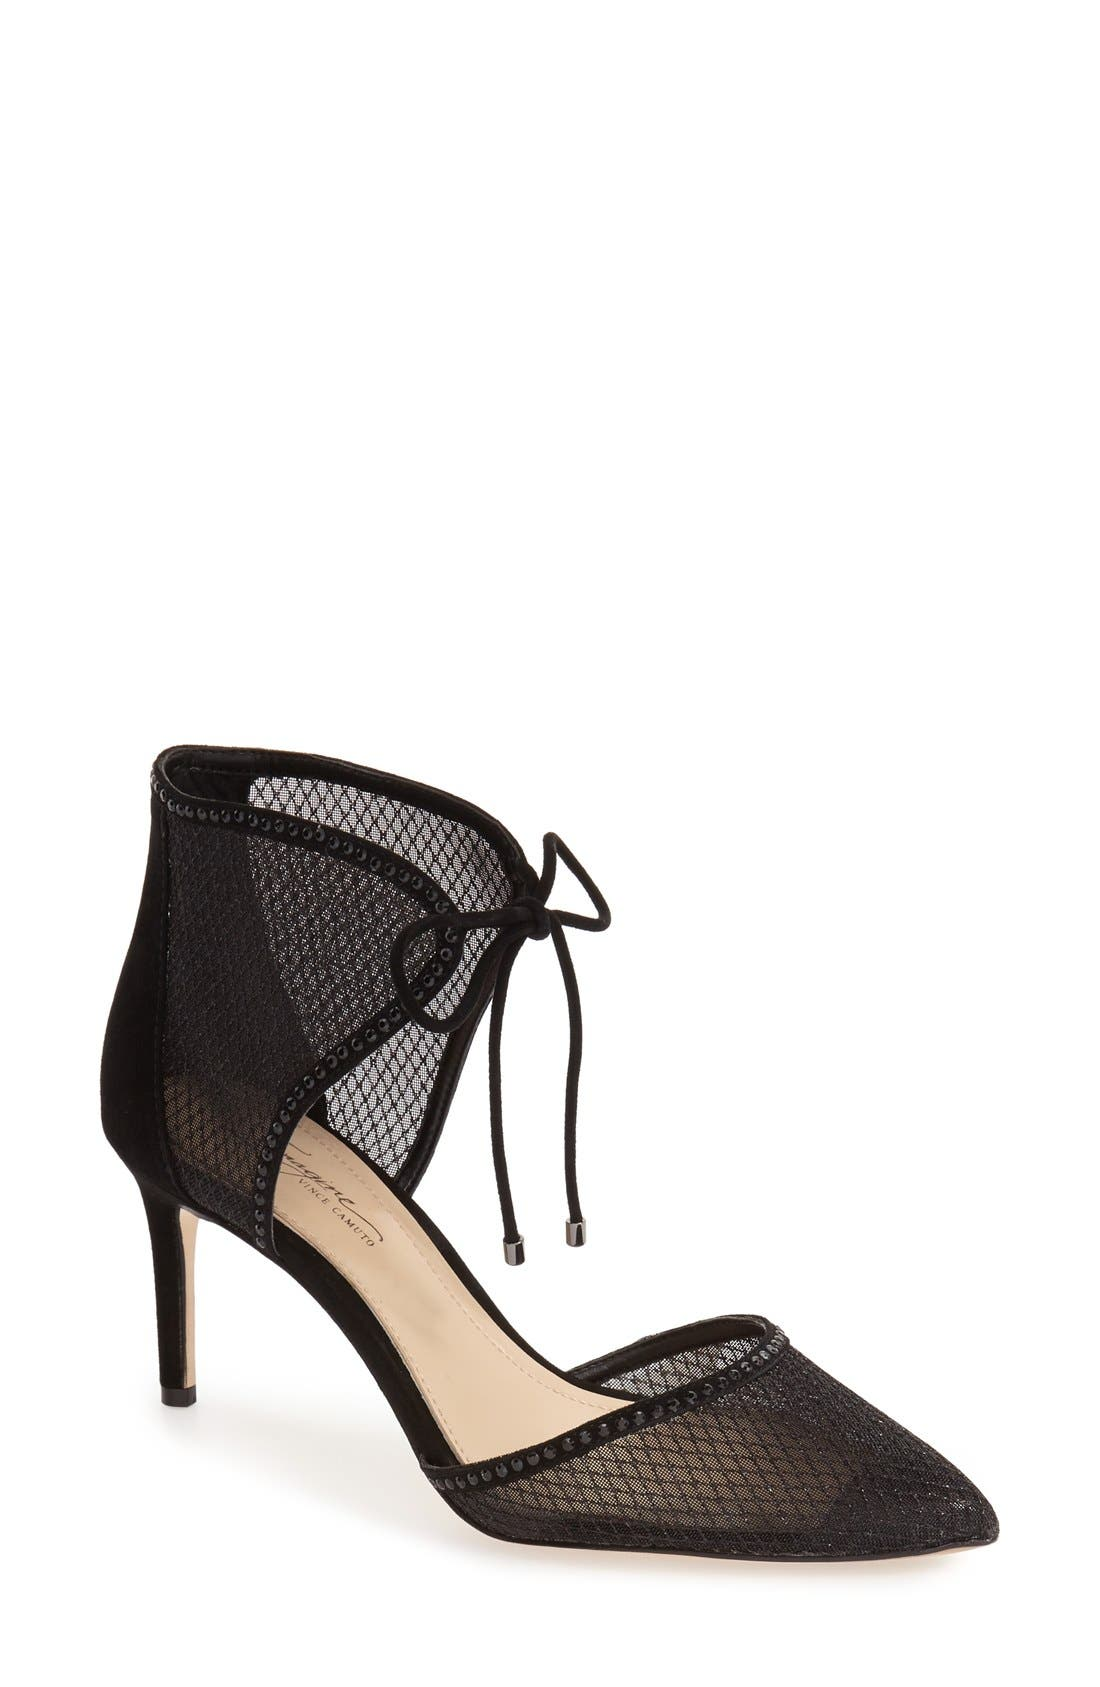 IMAGINE BY VINCE CAMUTO 'Mark' Mesh Panel d'Orsay